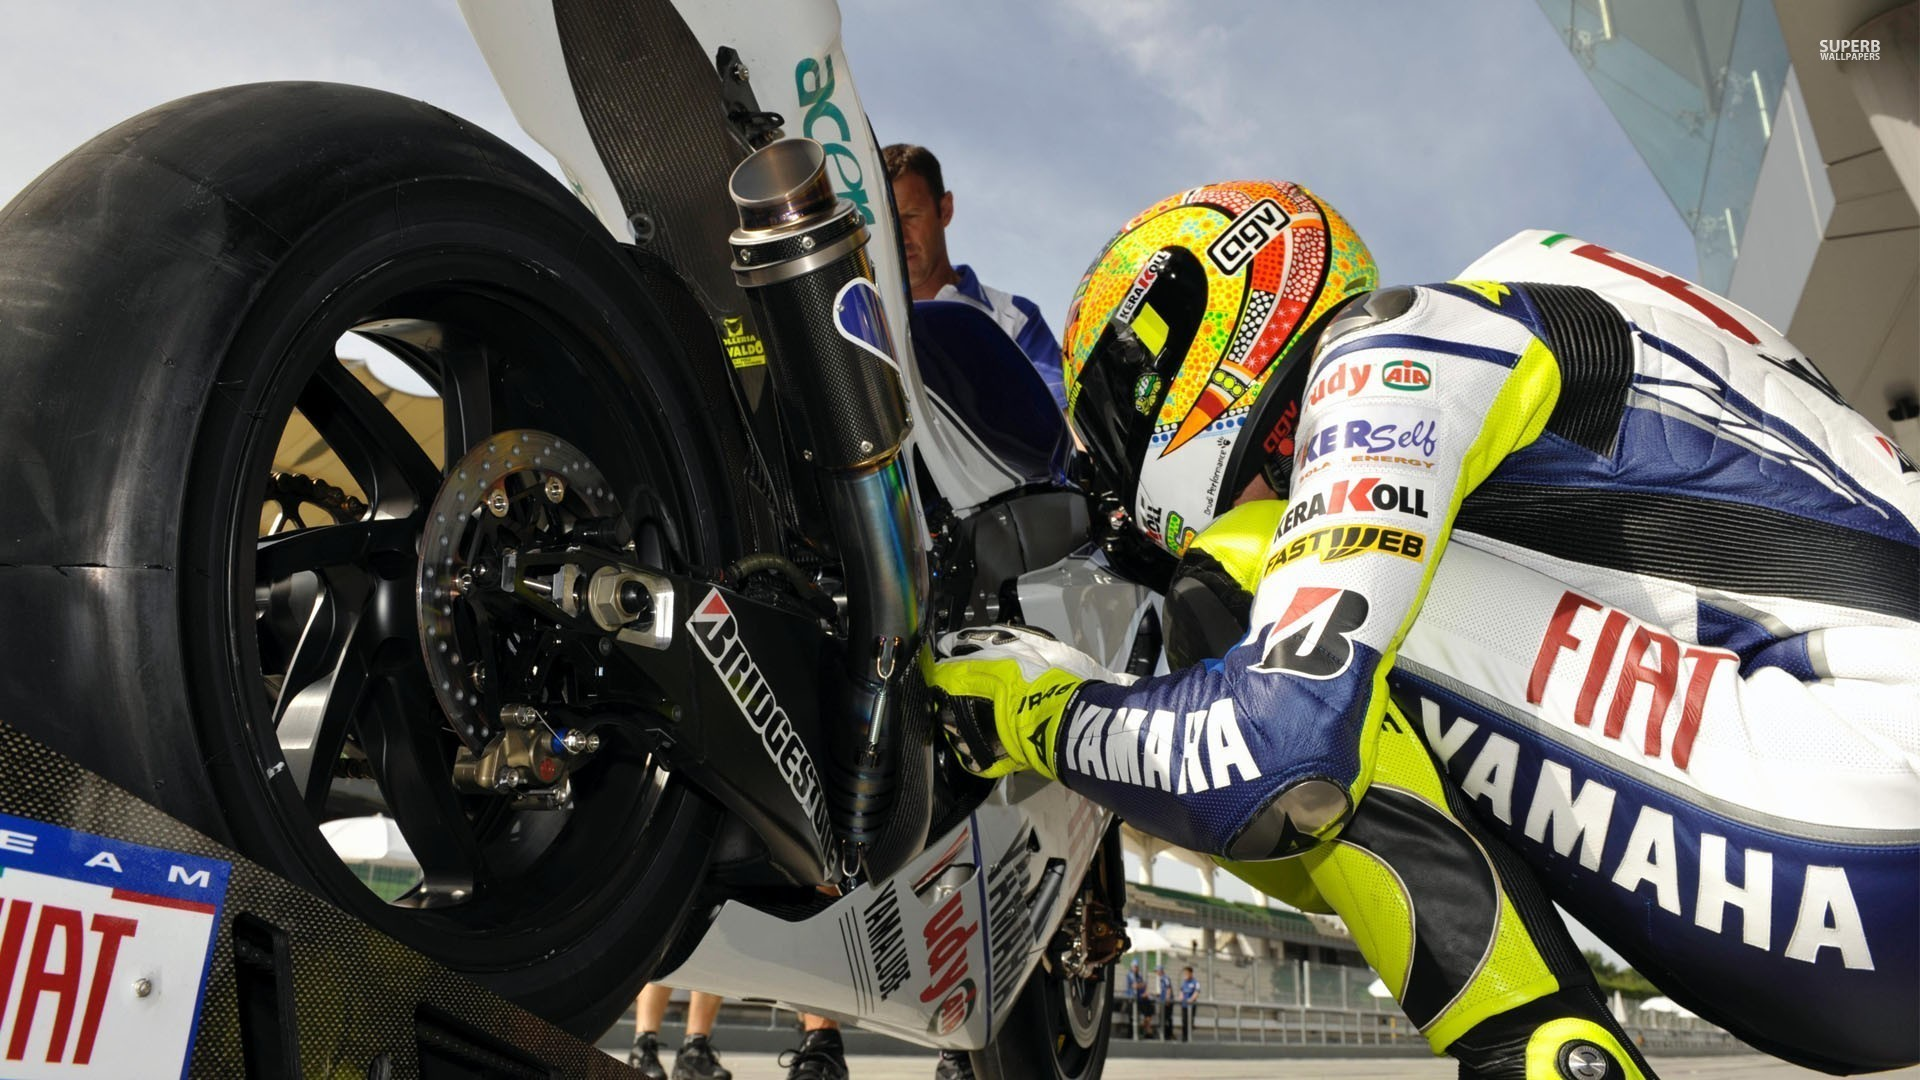 Valentino Rossi Motorcycle wallpapers   Wide Screen Wallpaper 1080p,2K .